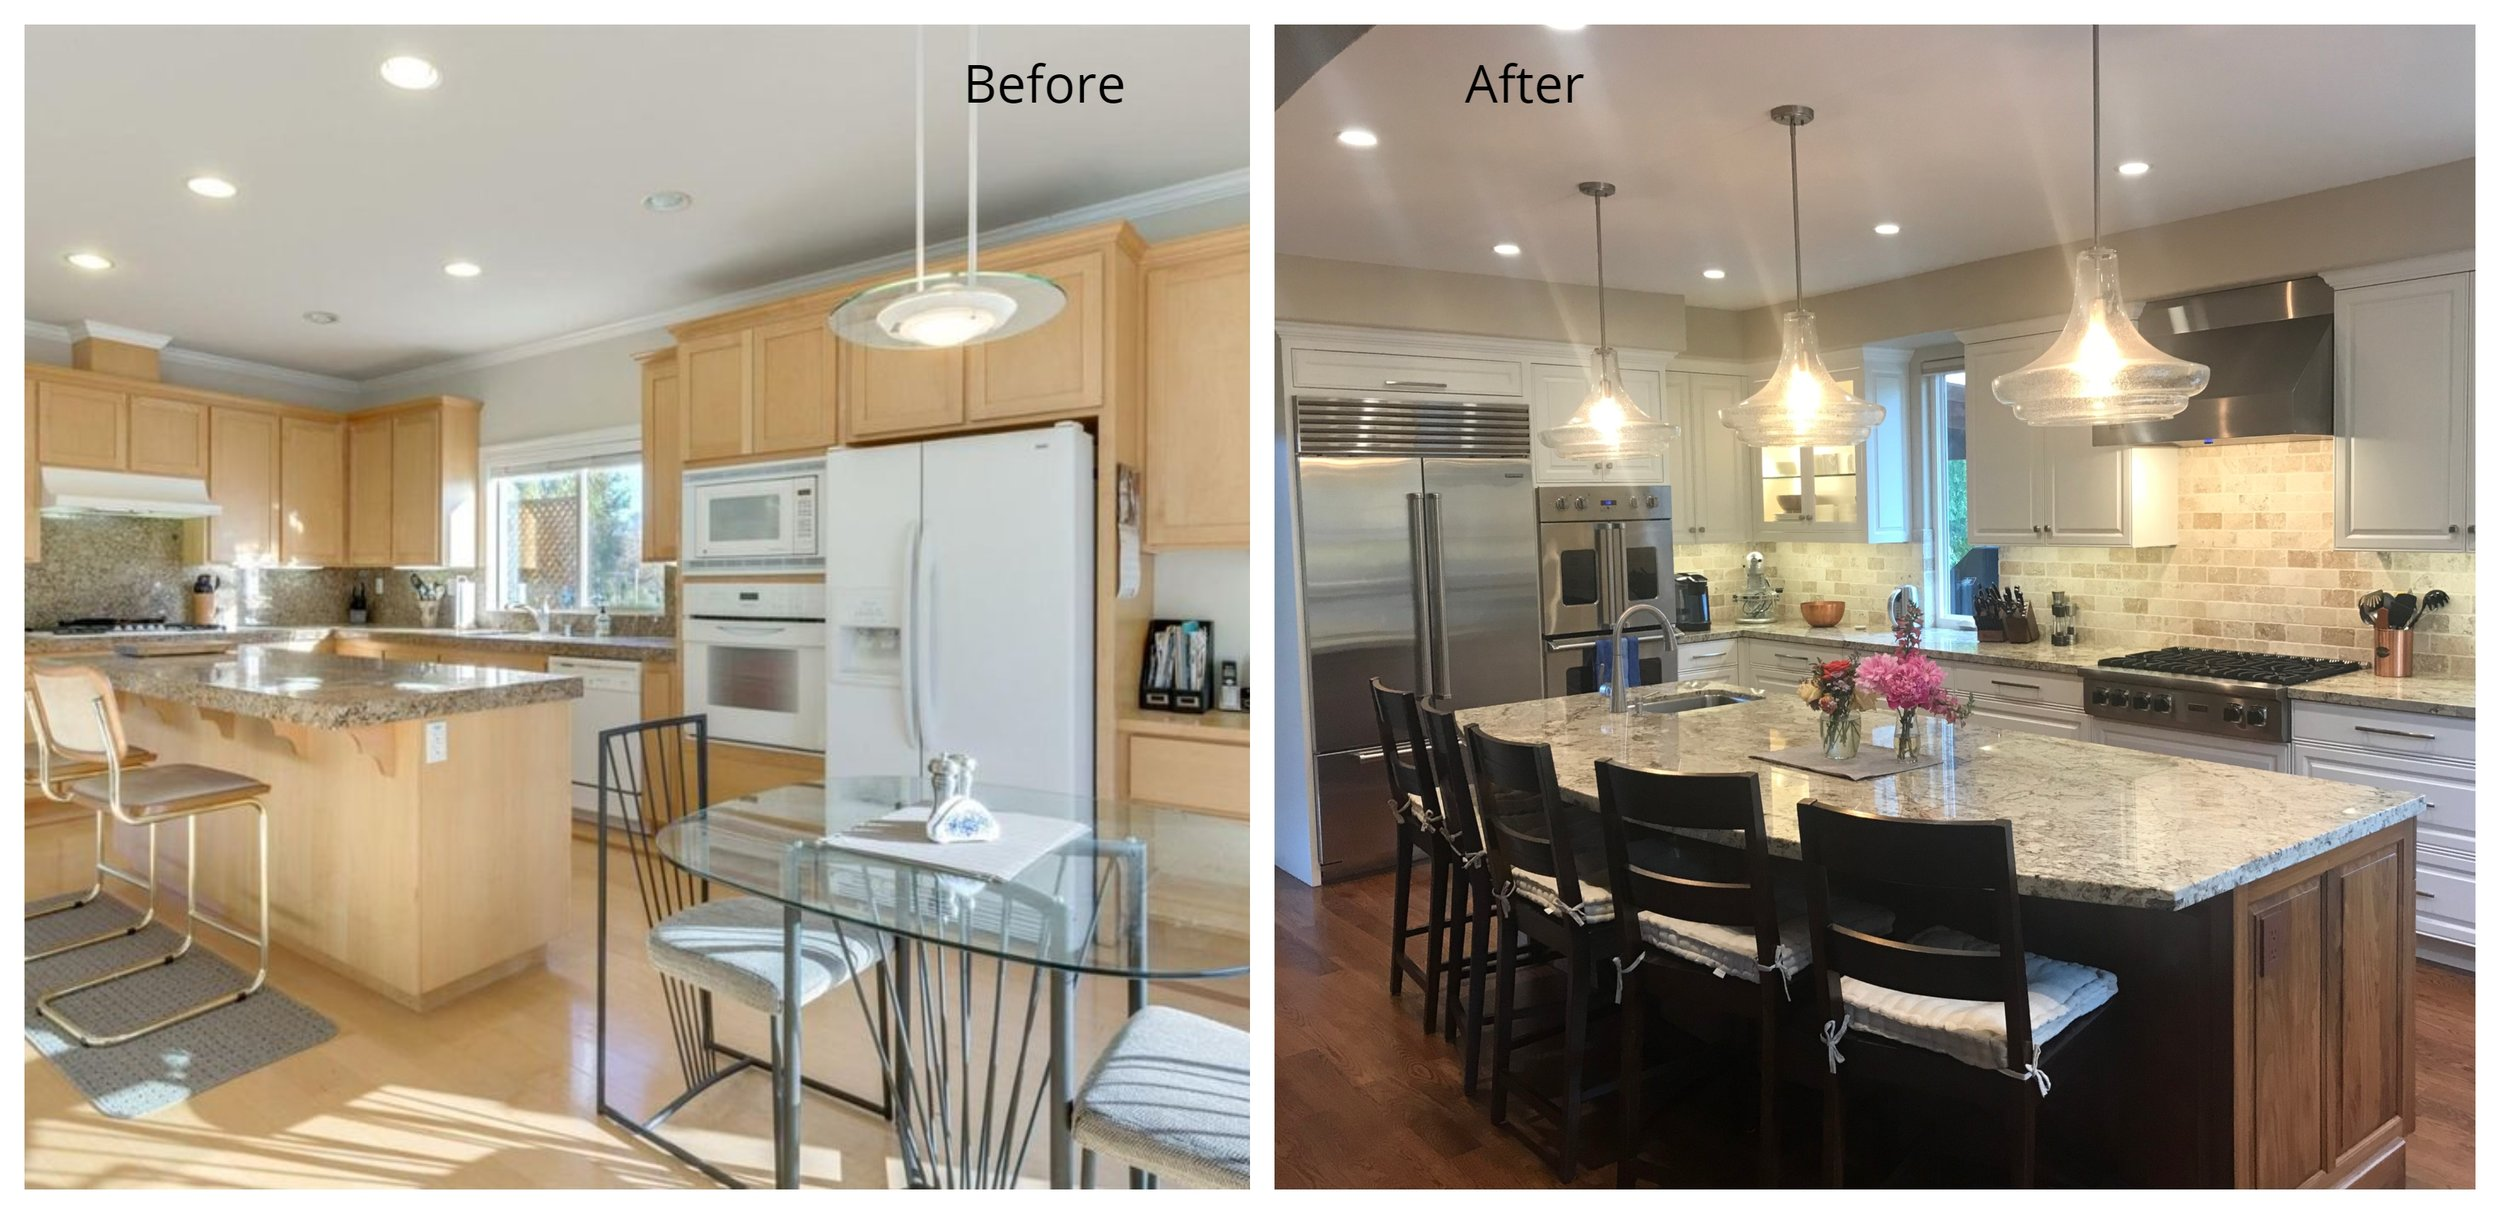 Bennett Valley Kitchen Remodel Before & After.jpg